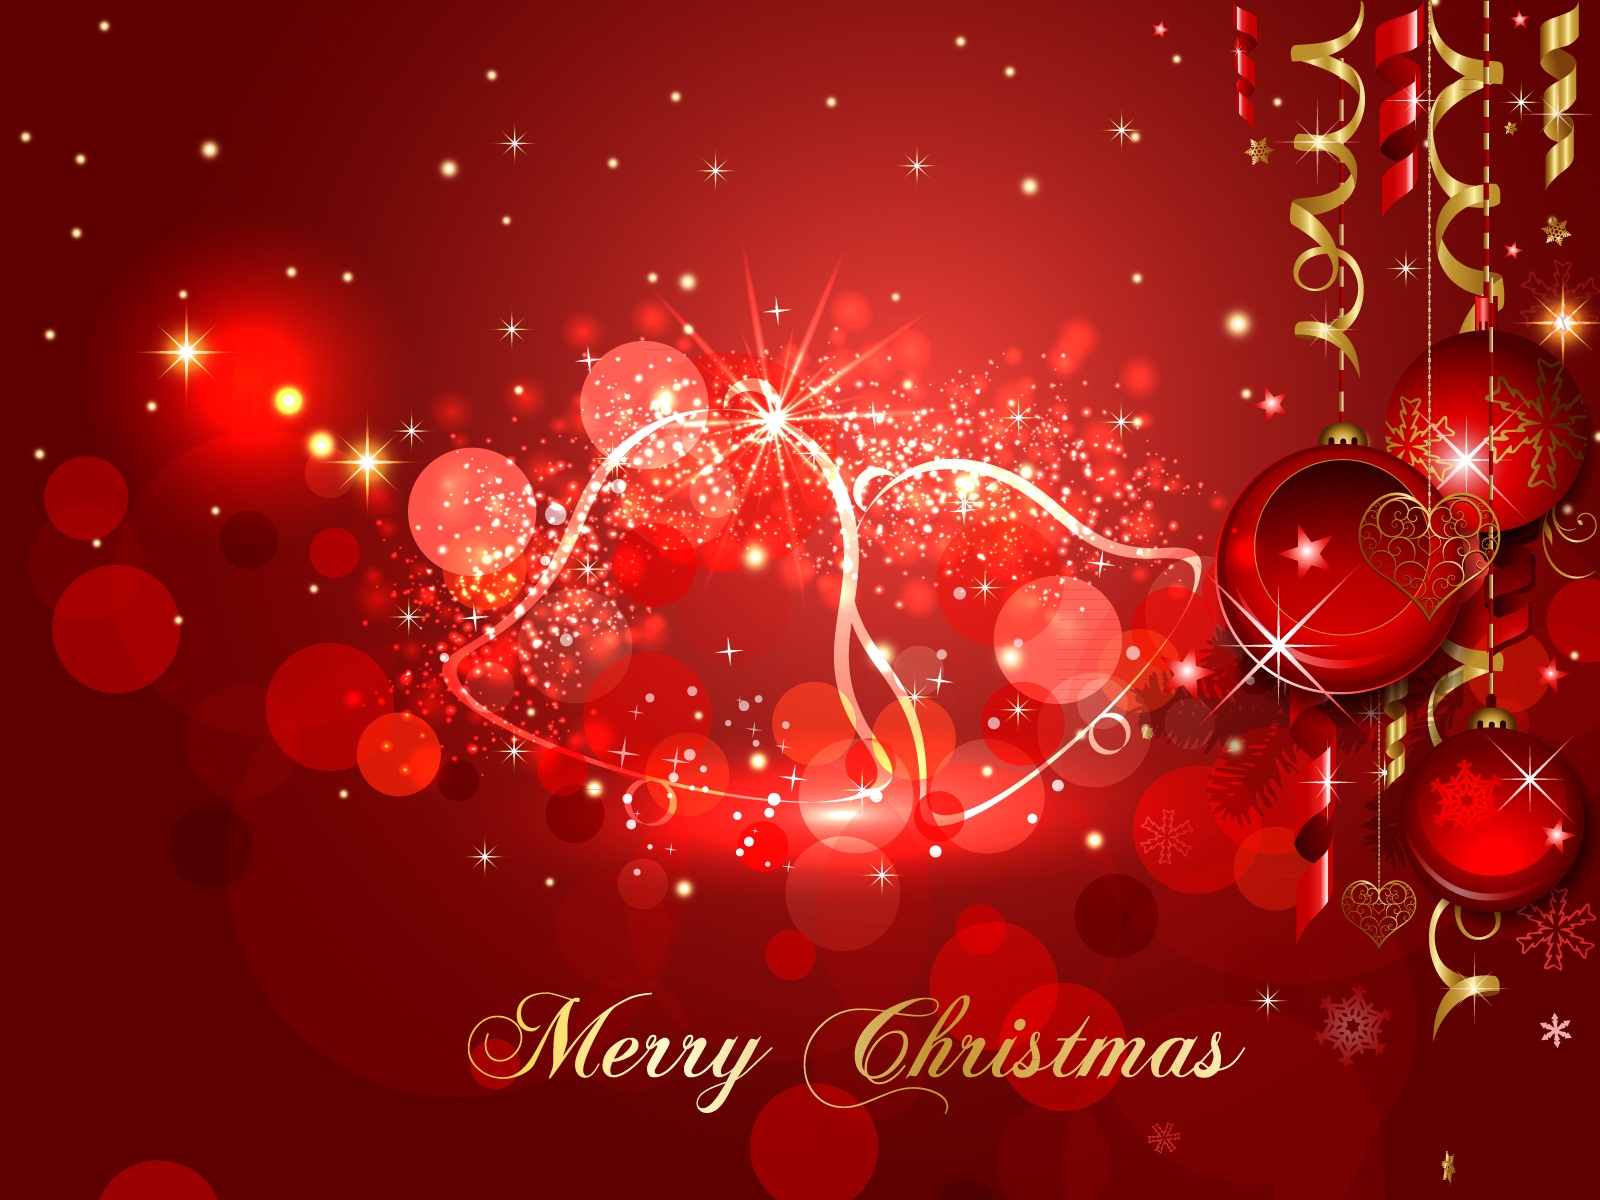 wallpaper 03 merry christmas wallpaper 04 merry christmas wallpaper 05 1600x1200